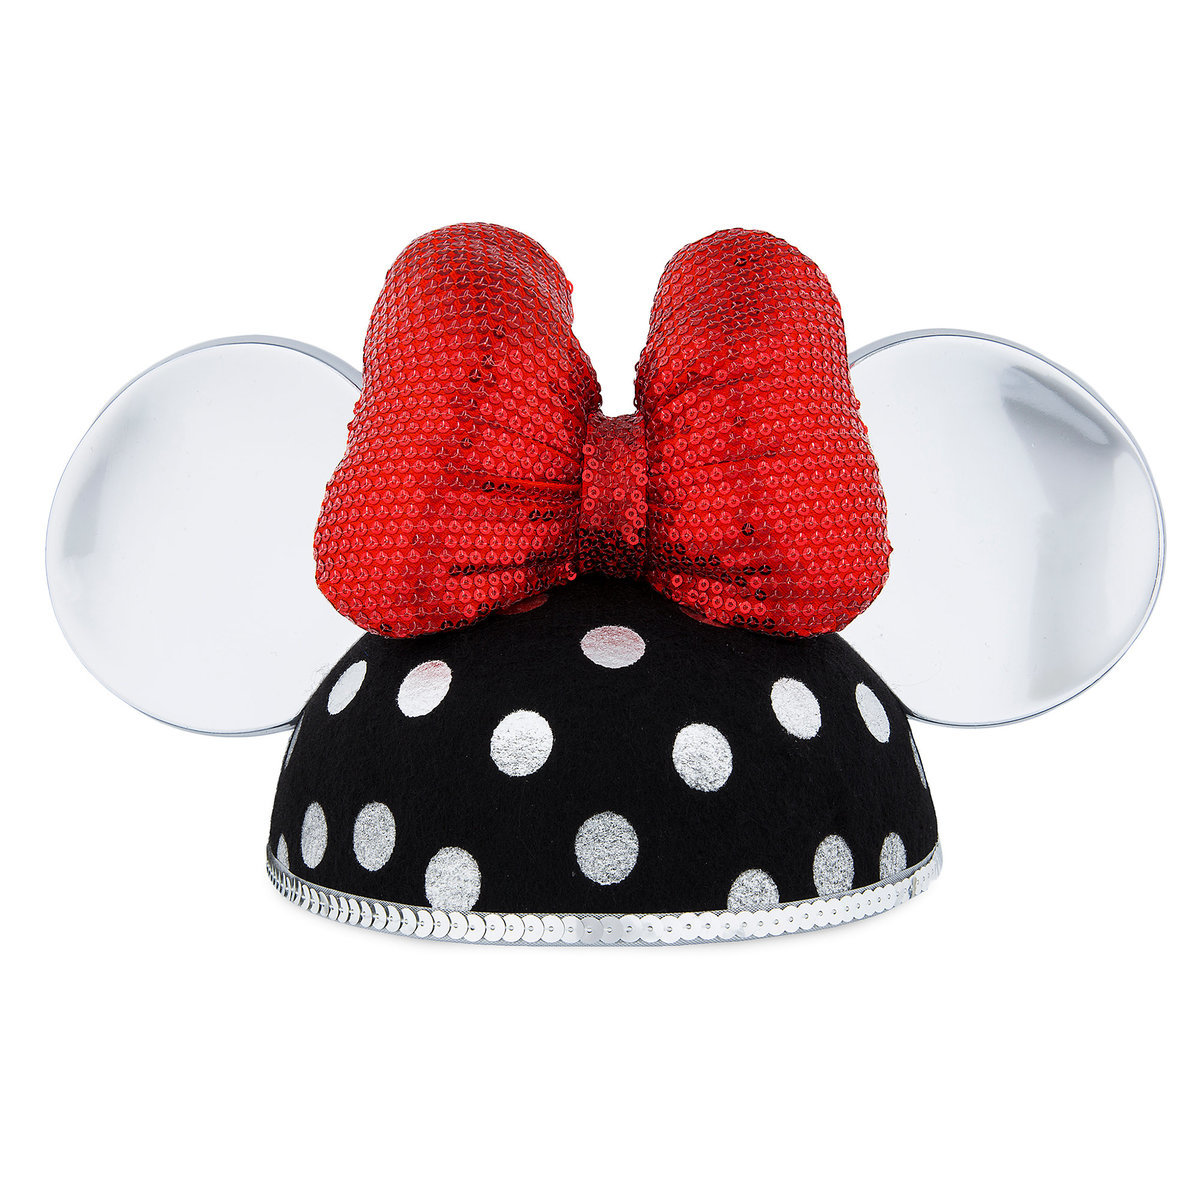 da743b7367e Product Image of Minnie Mouse Ear Hat for Adults - Silver Polka Dot   1